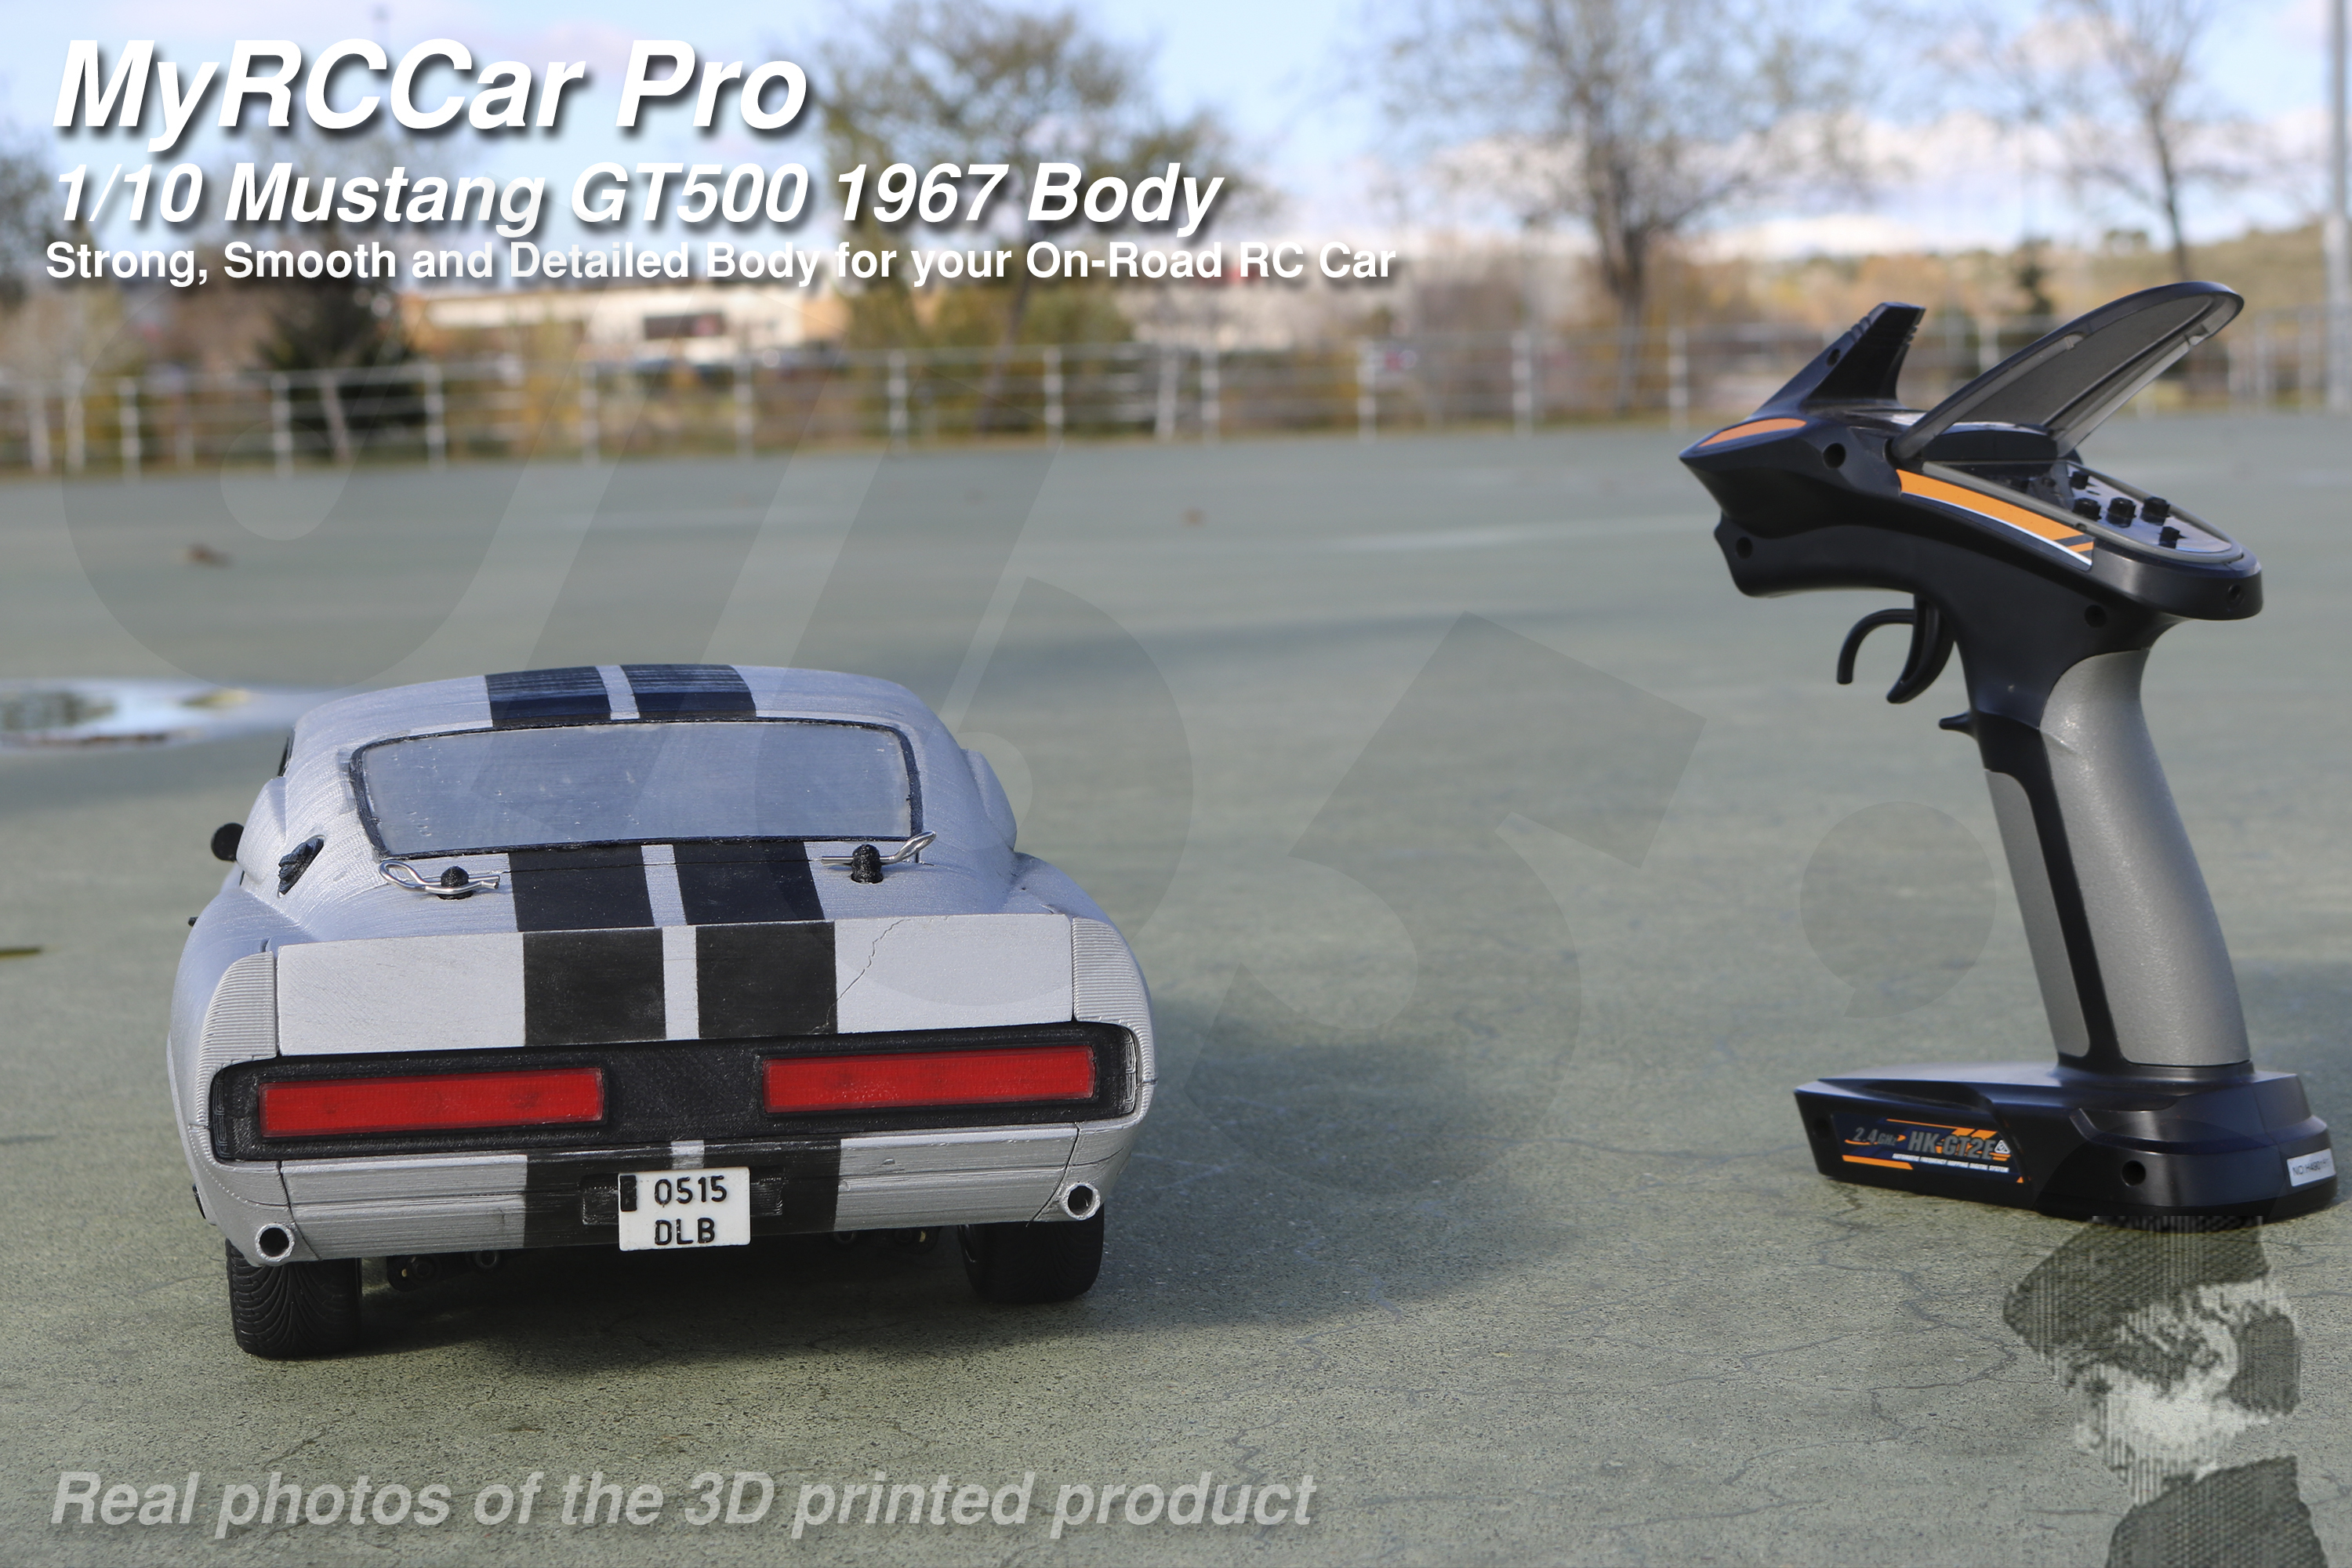 MRCC_Mustie_HORIZONTAL_3000x2000_05.jpg Descargar archivo STL MyRCCar Mustang GT500 1967 1/10 On-Road RC car body • Modelo para la impresora 3D, dlb5